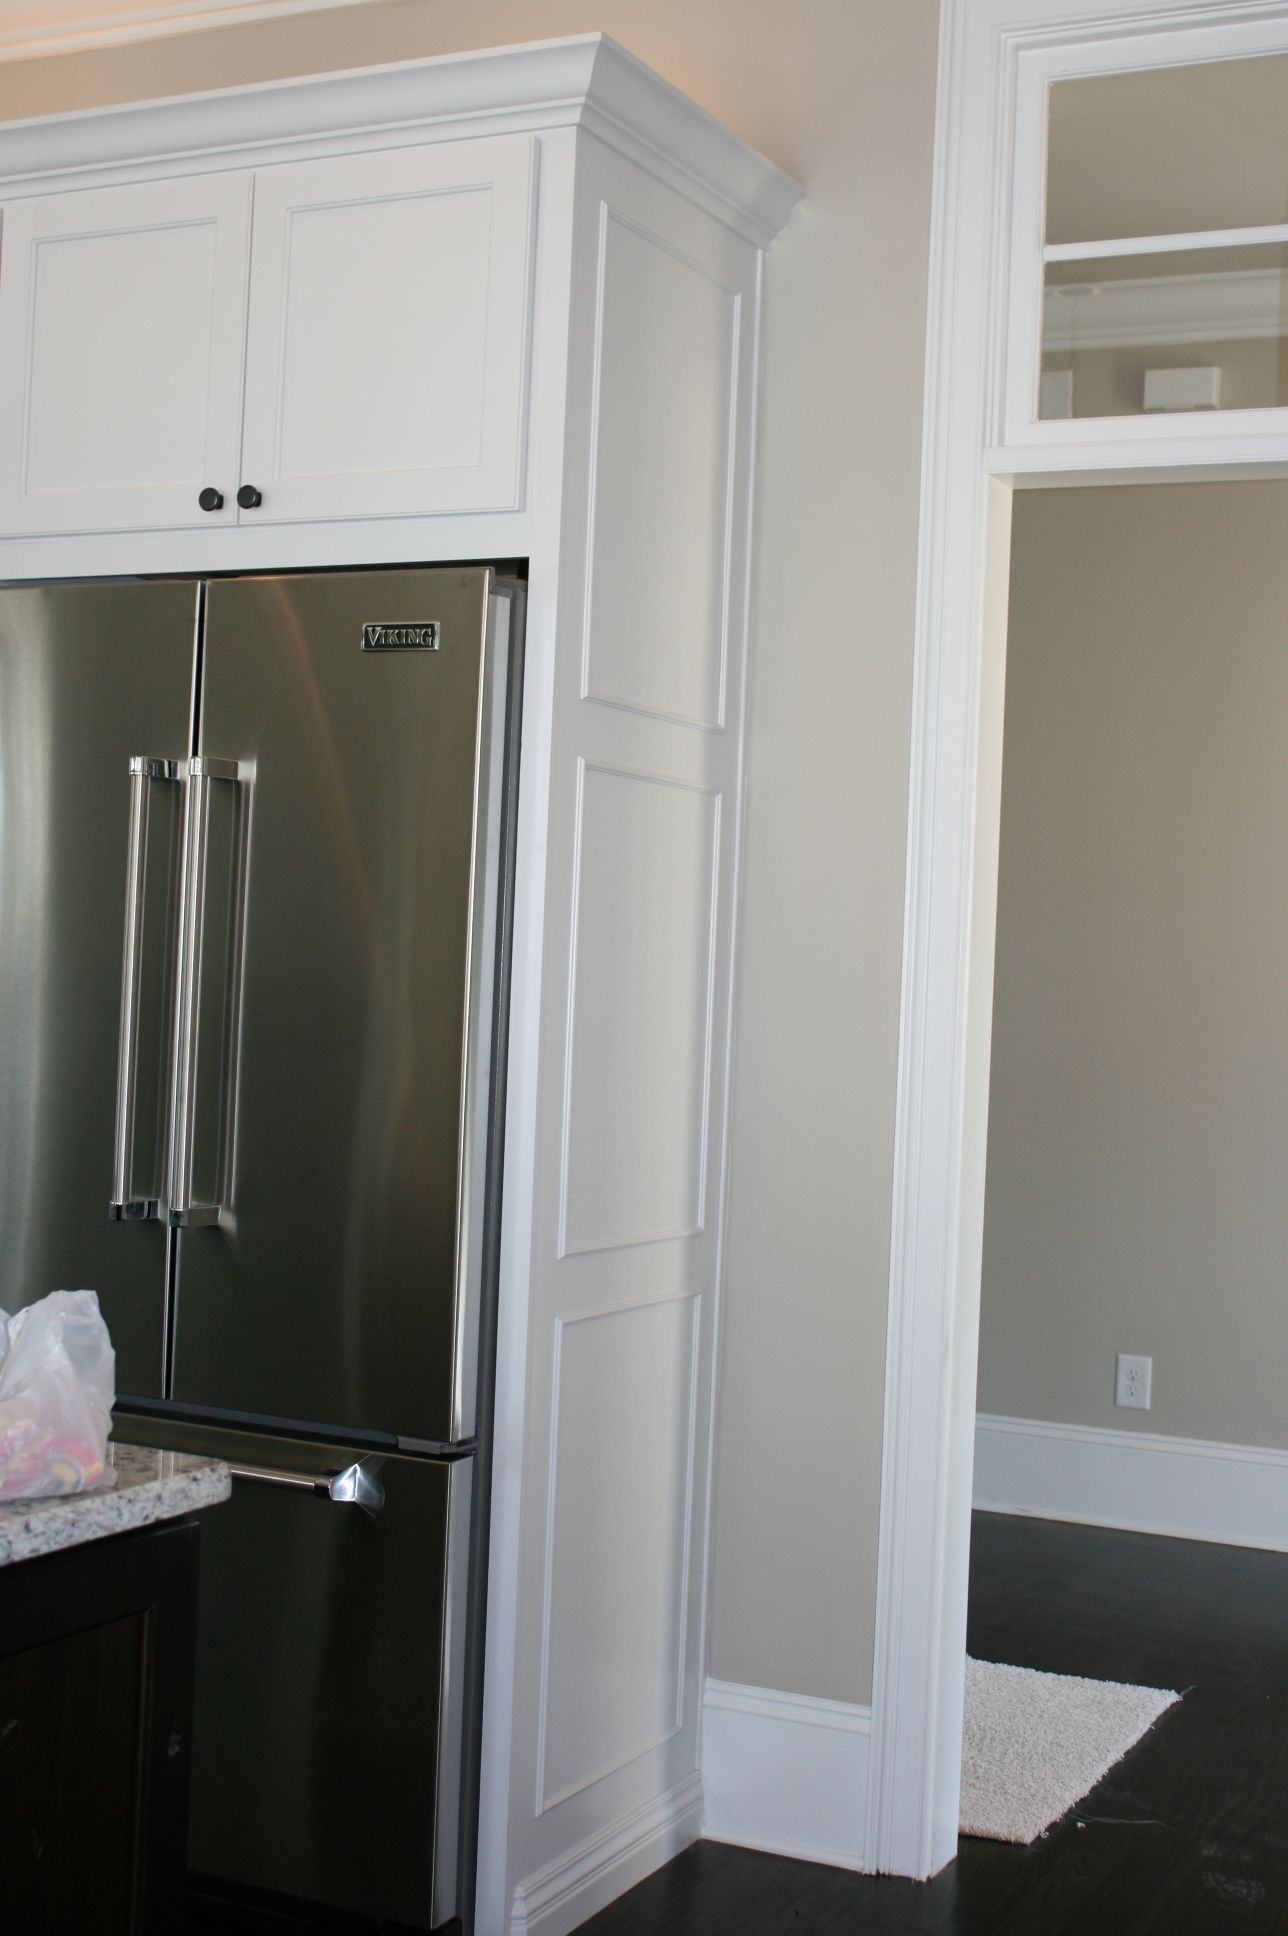 We finished the end of the refrigerator panel by adding a ...